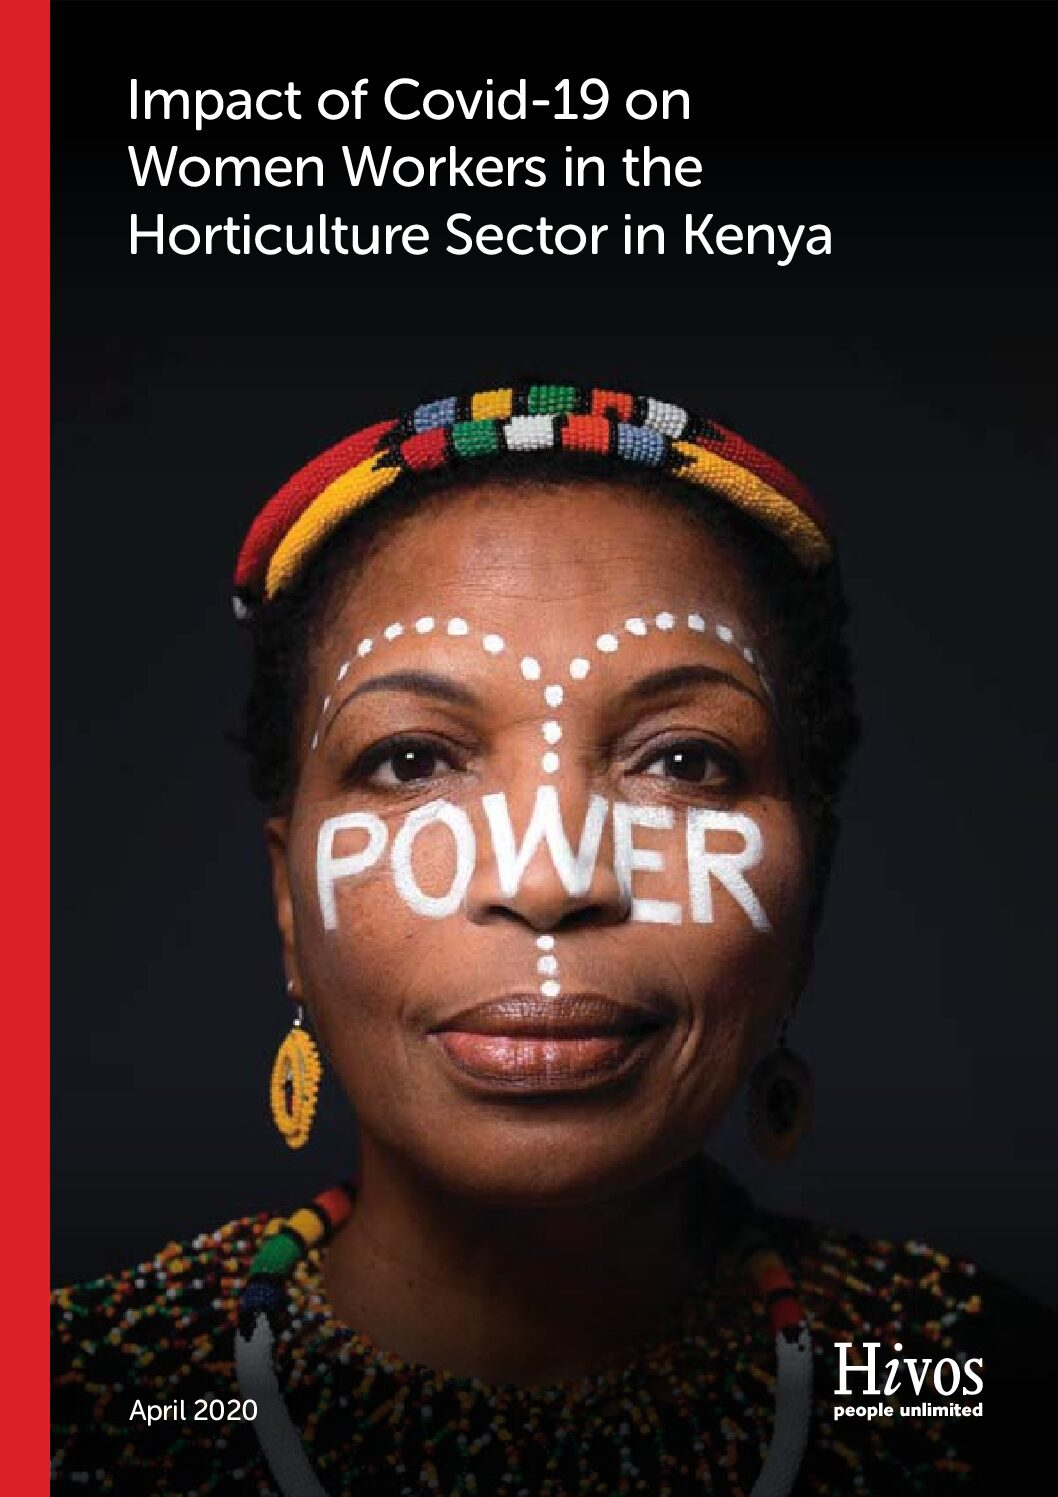 Impact of Covid-19 on Women Workers in the Horticulture Sector in Kenya